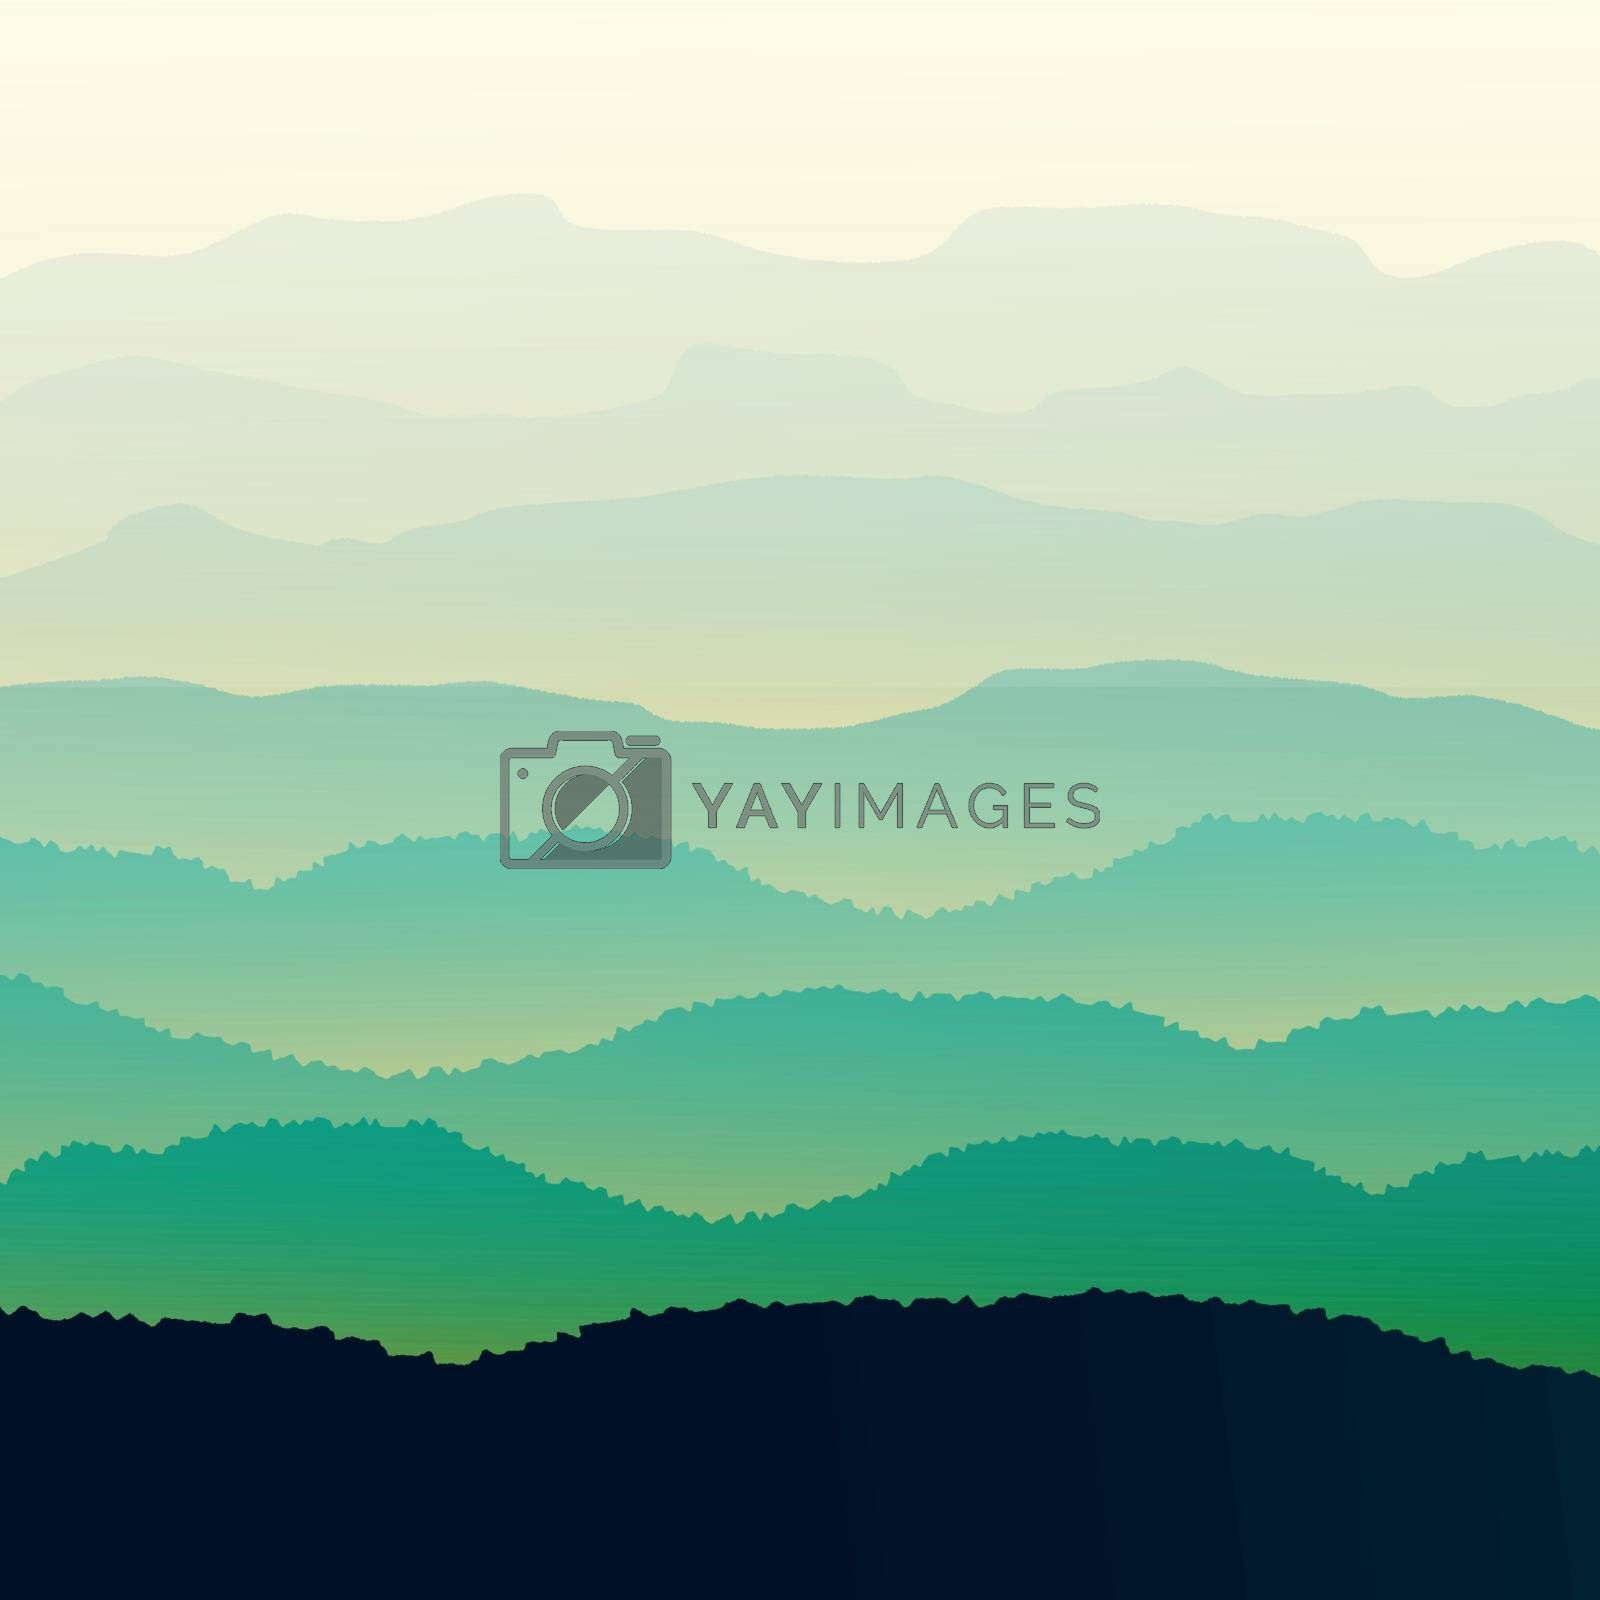 Panorama vector illustration of mountain ridges, based on the Smokey Mountains